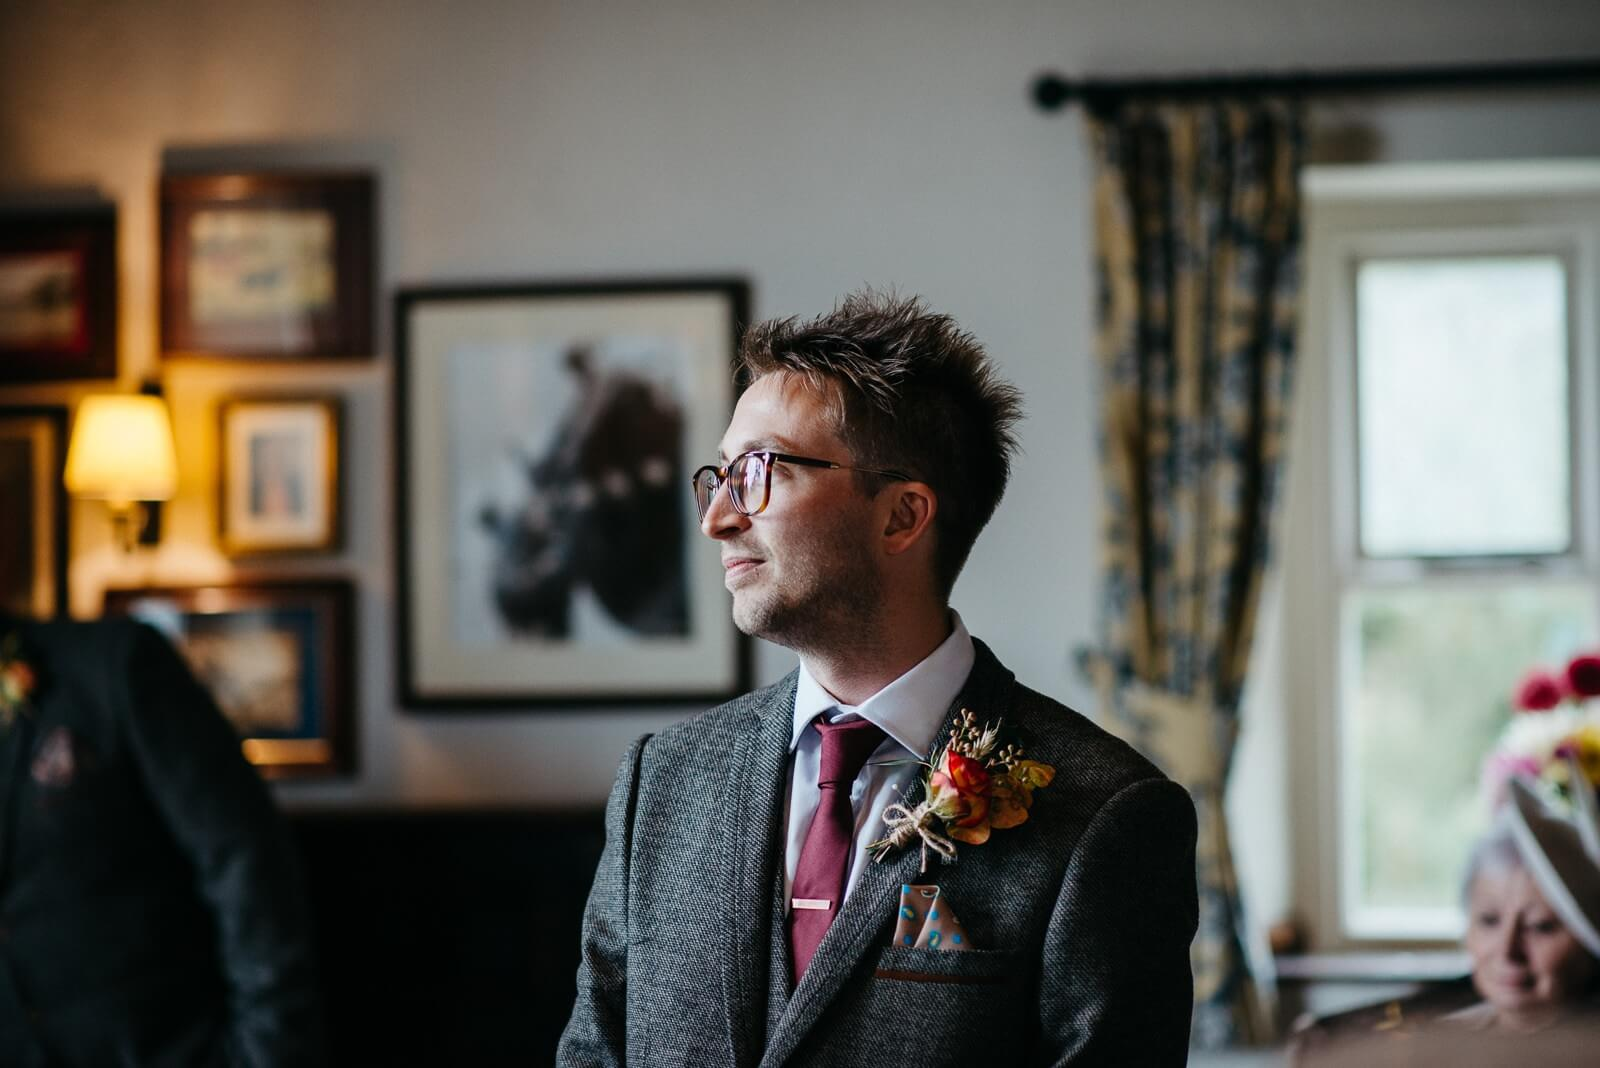 Quiet portrait of groom awaiting his autumn bride at Ty Mawr Cardiff